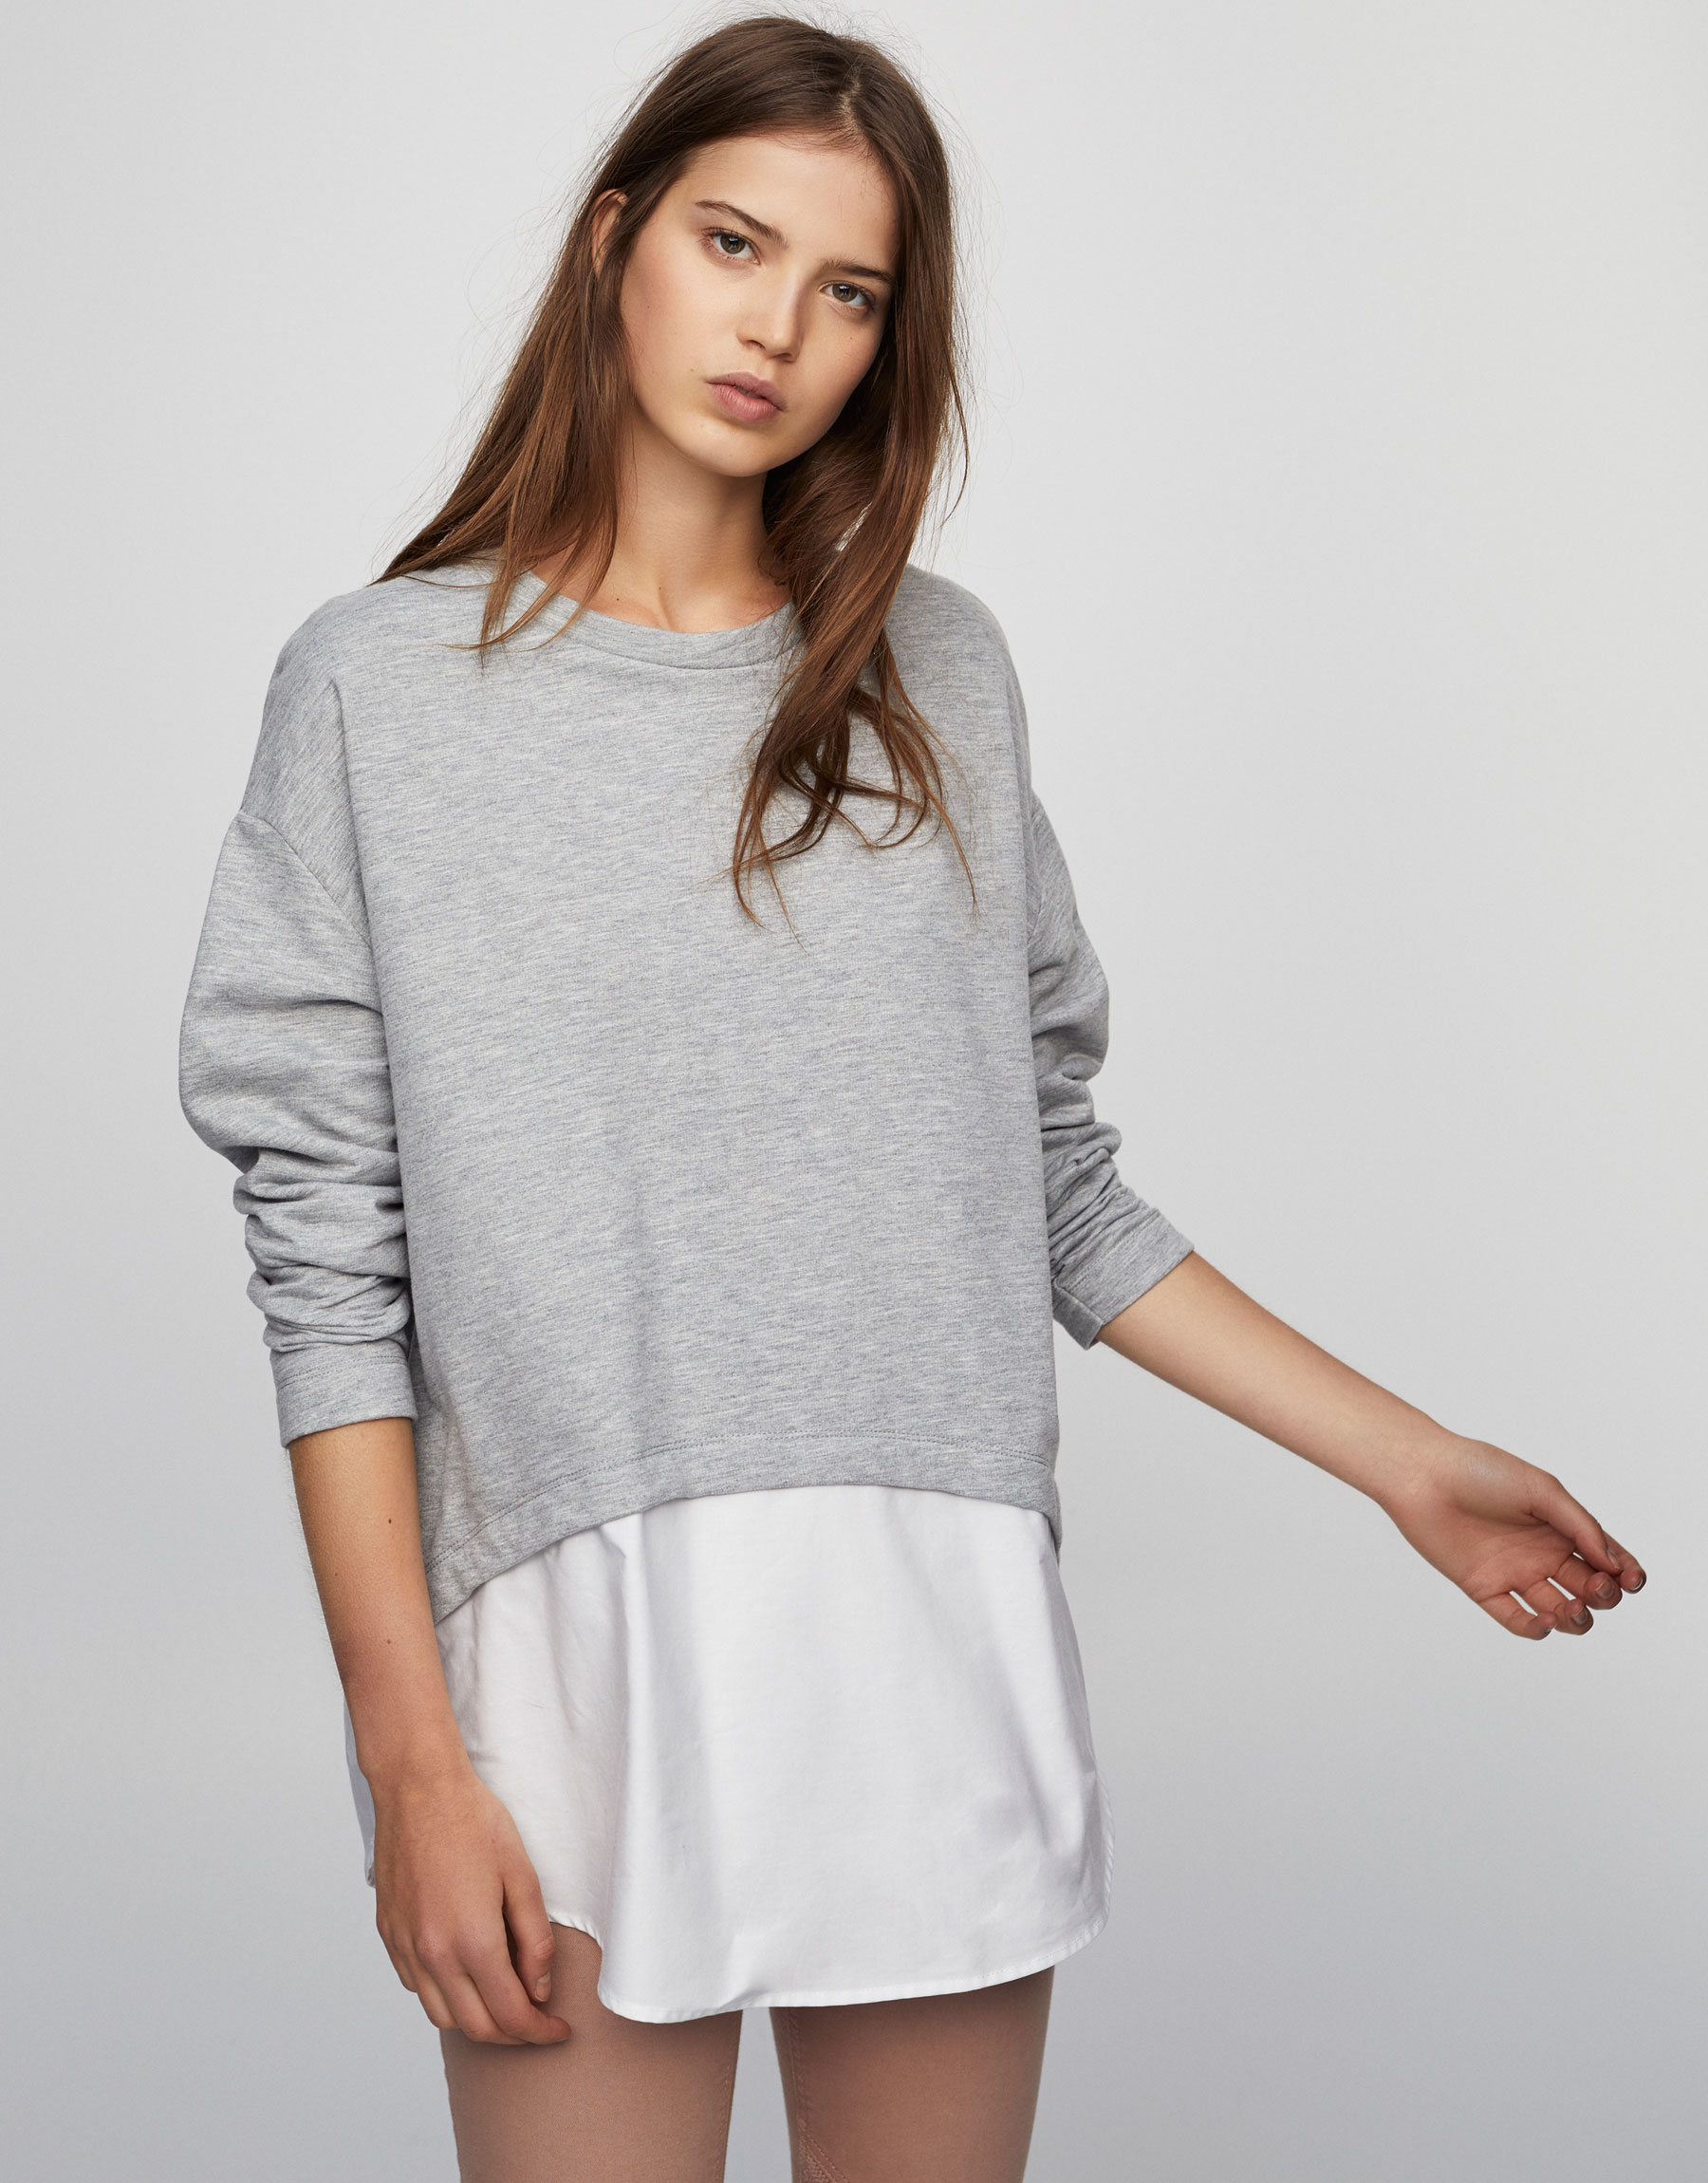 Sweatshirt with shirt hem